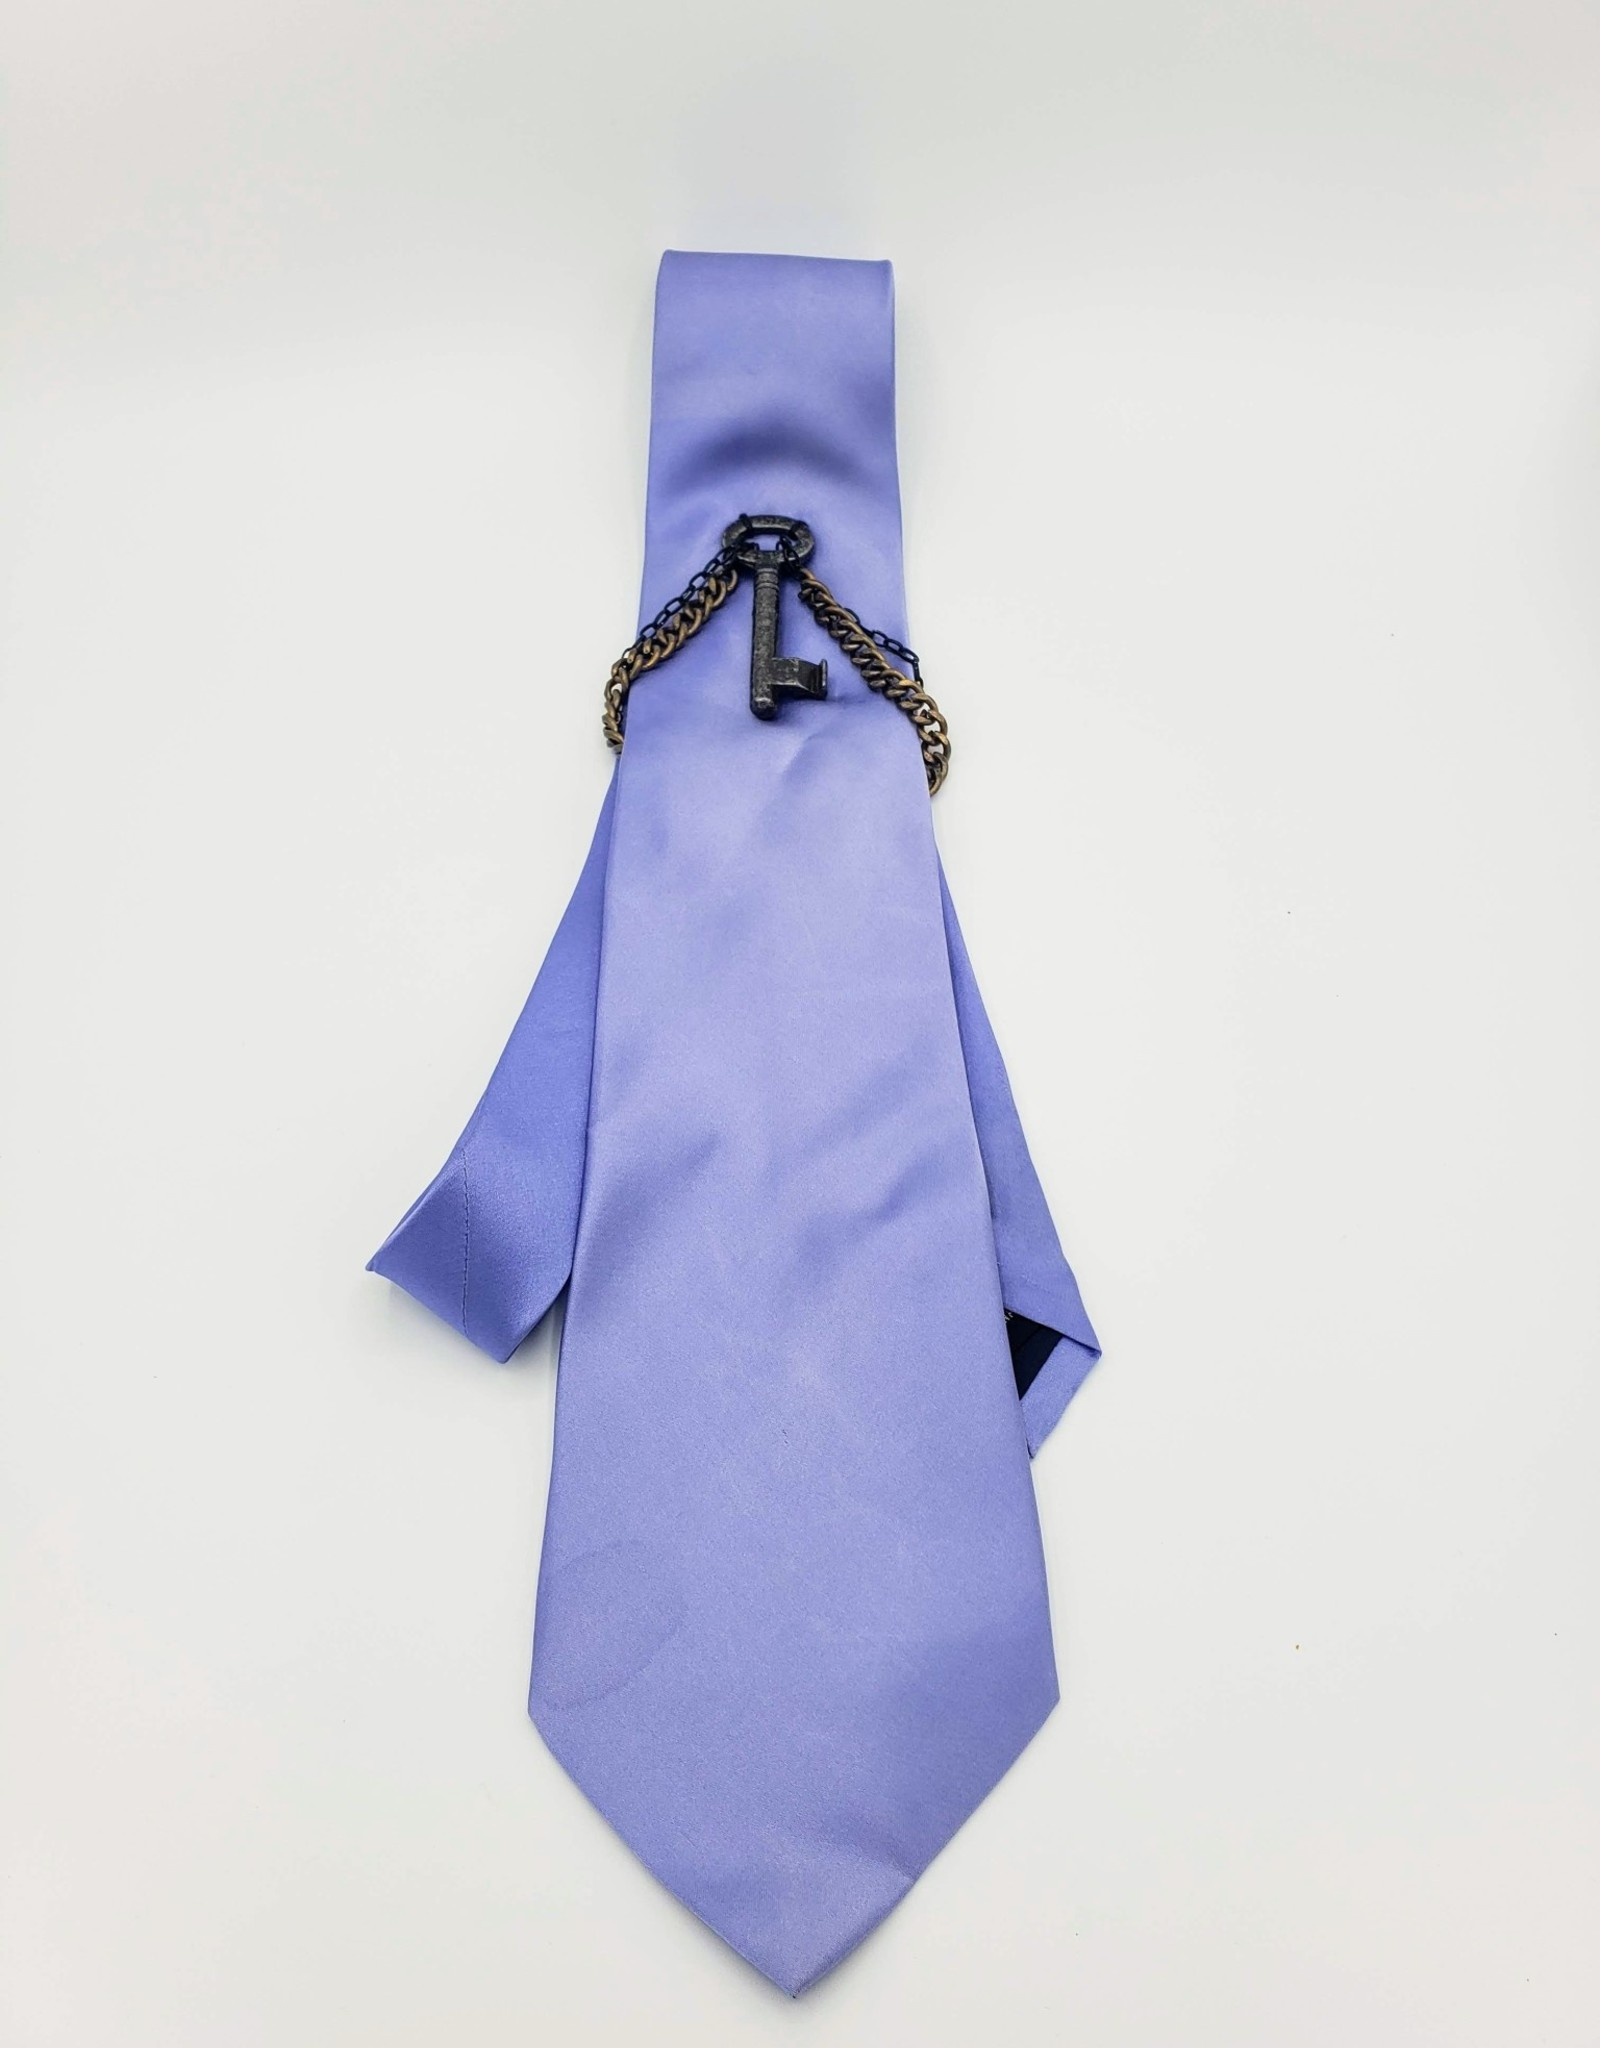 Redux Blue Microfiber Tie with Key Ornament and chains